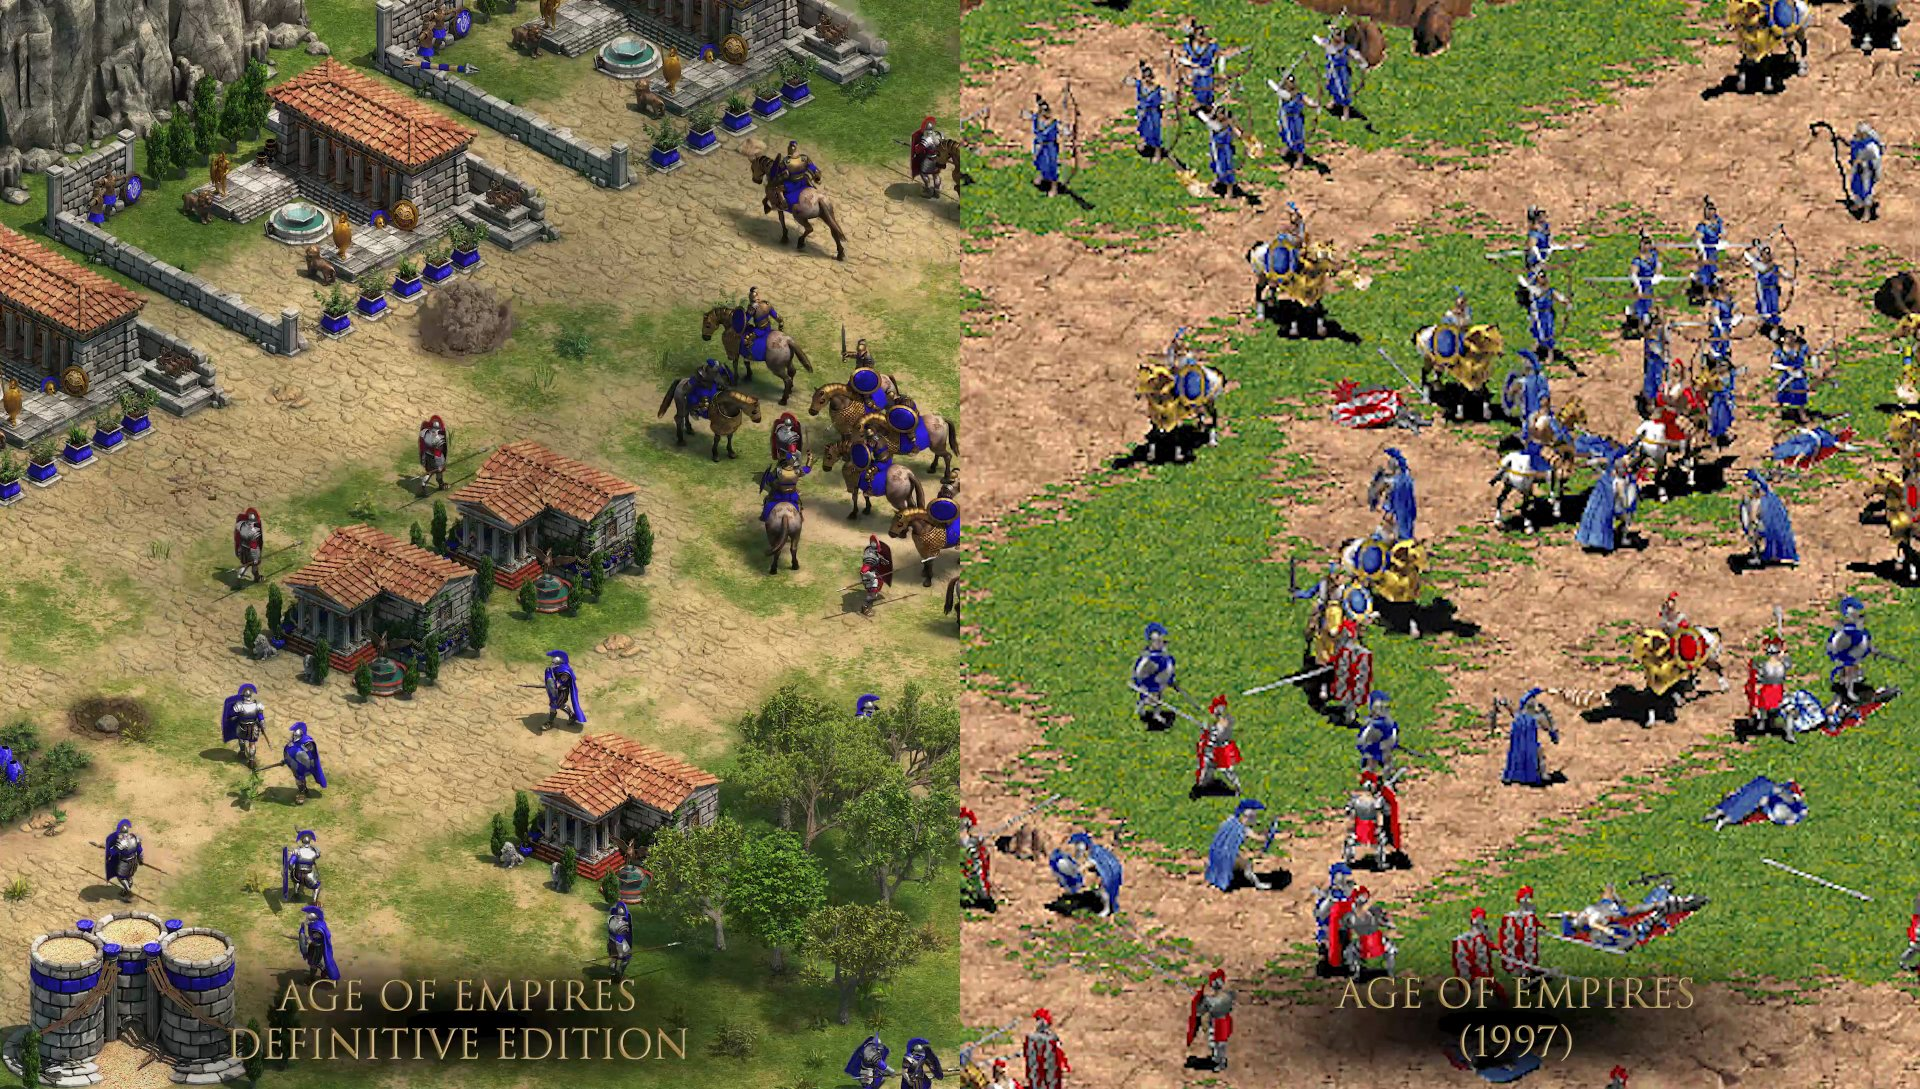 Rinviato Age of Empires: Definitive Edition